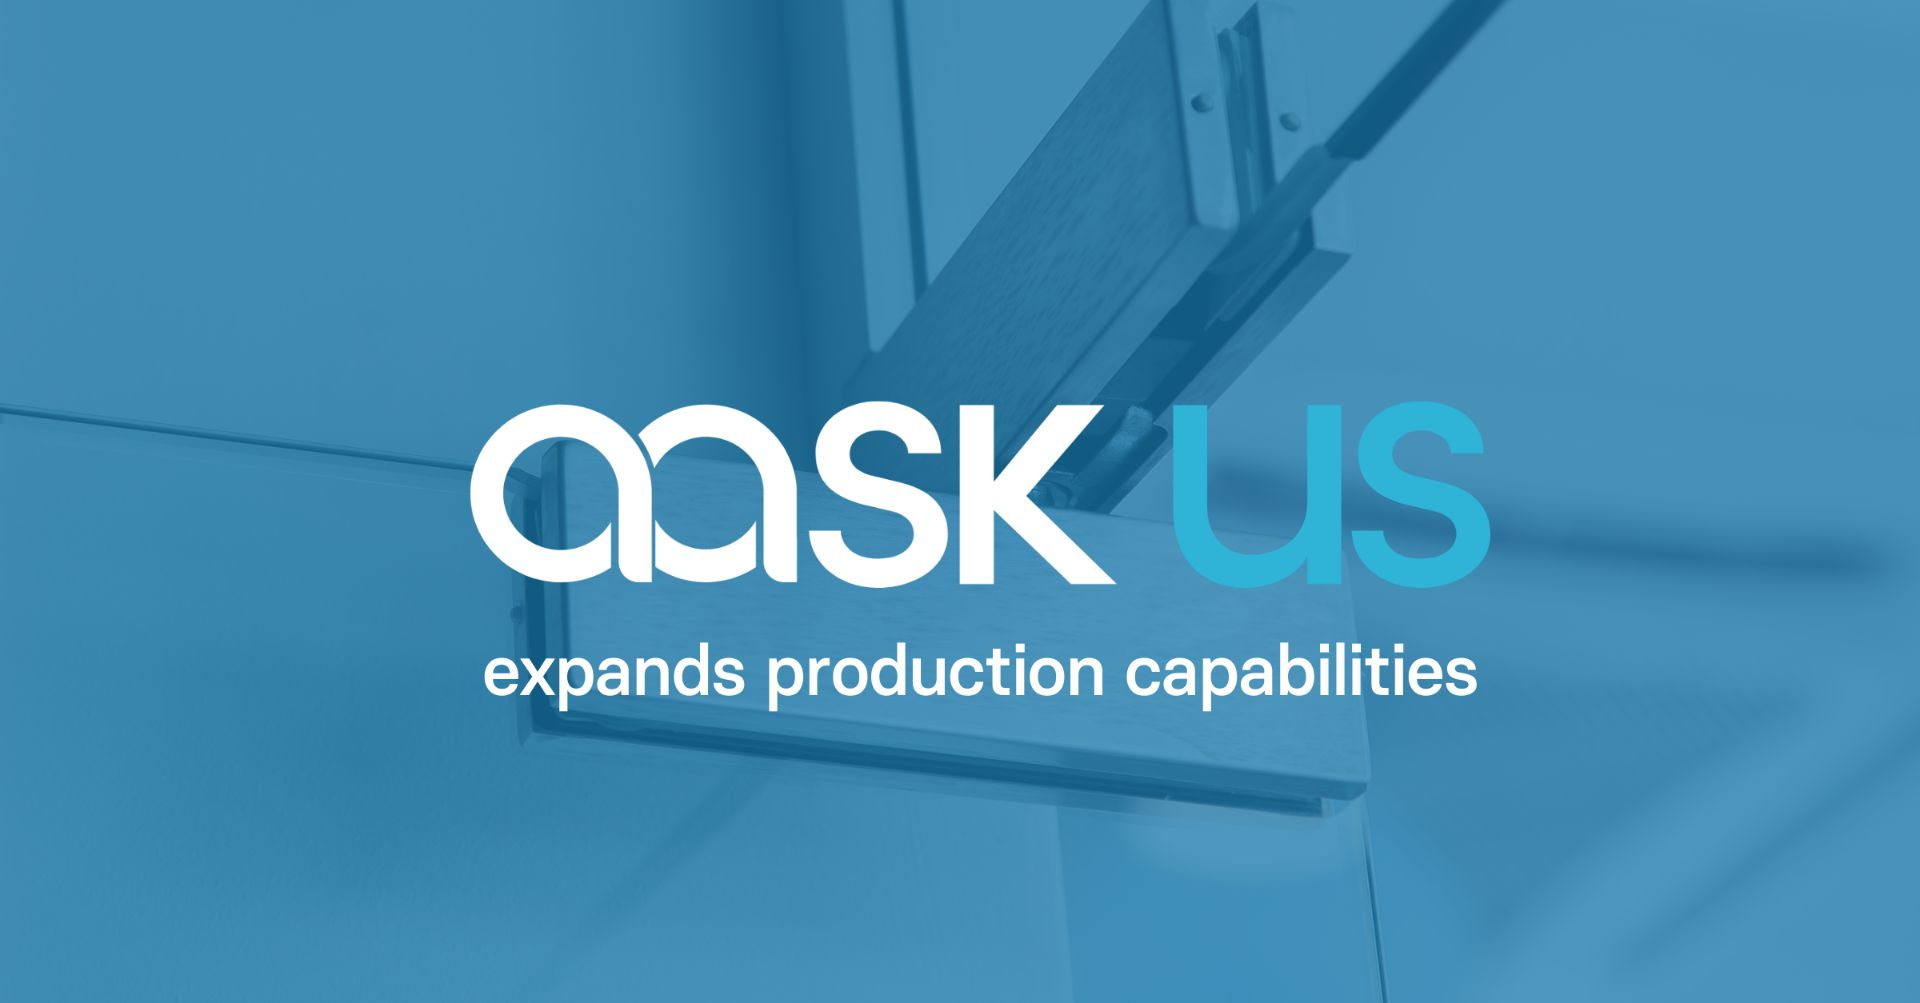 aask us expands production capabilities